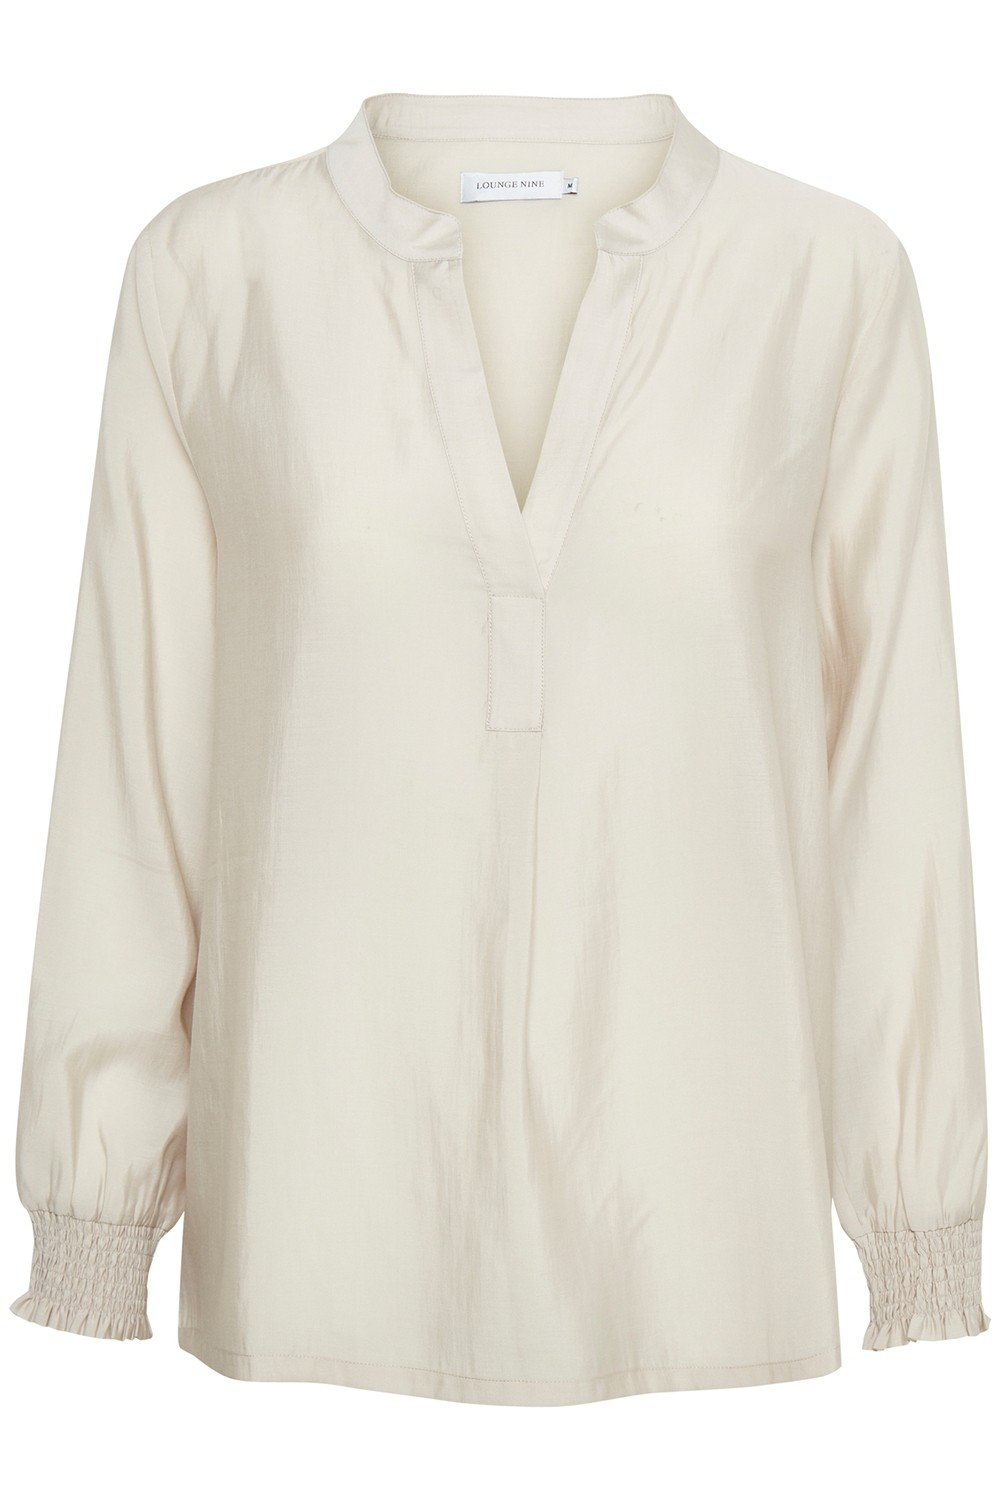 Lounge Nine 10607128 Penni Blouse Rainy Day